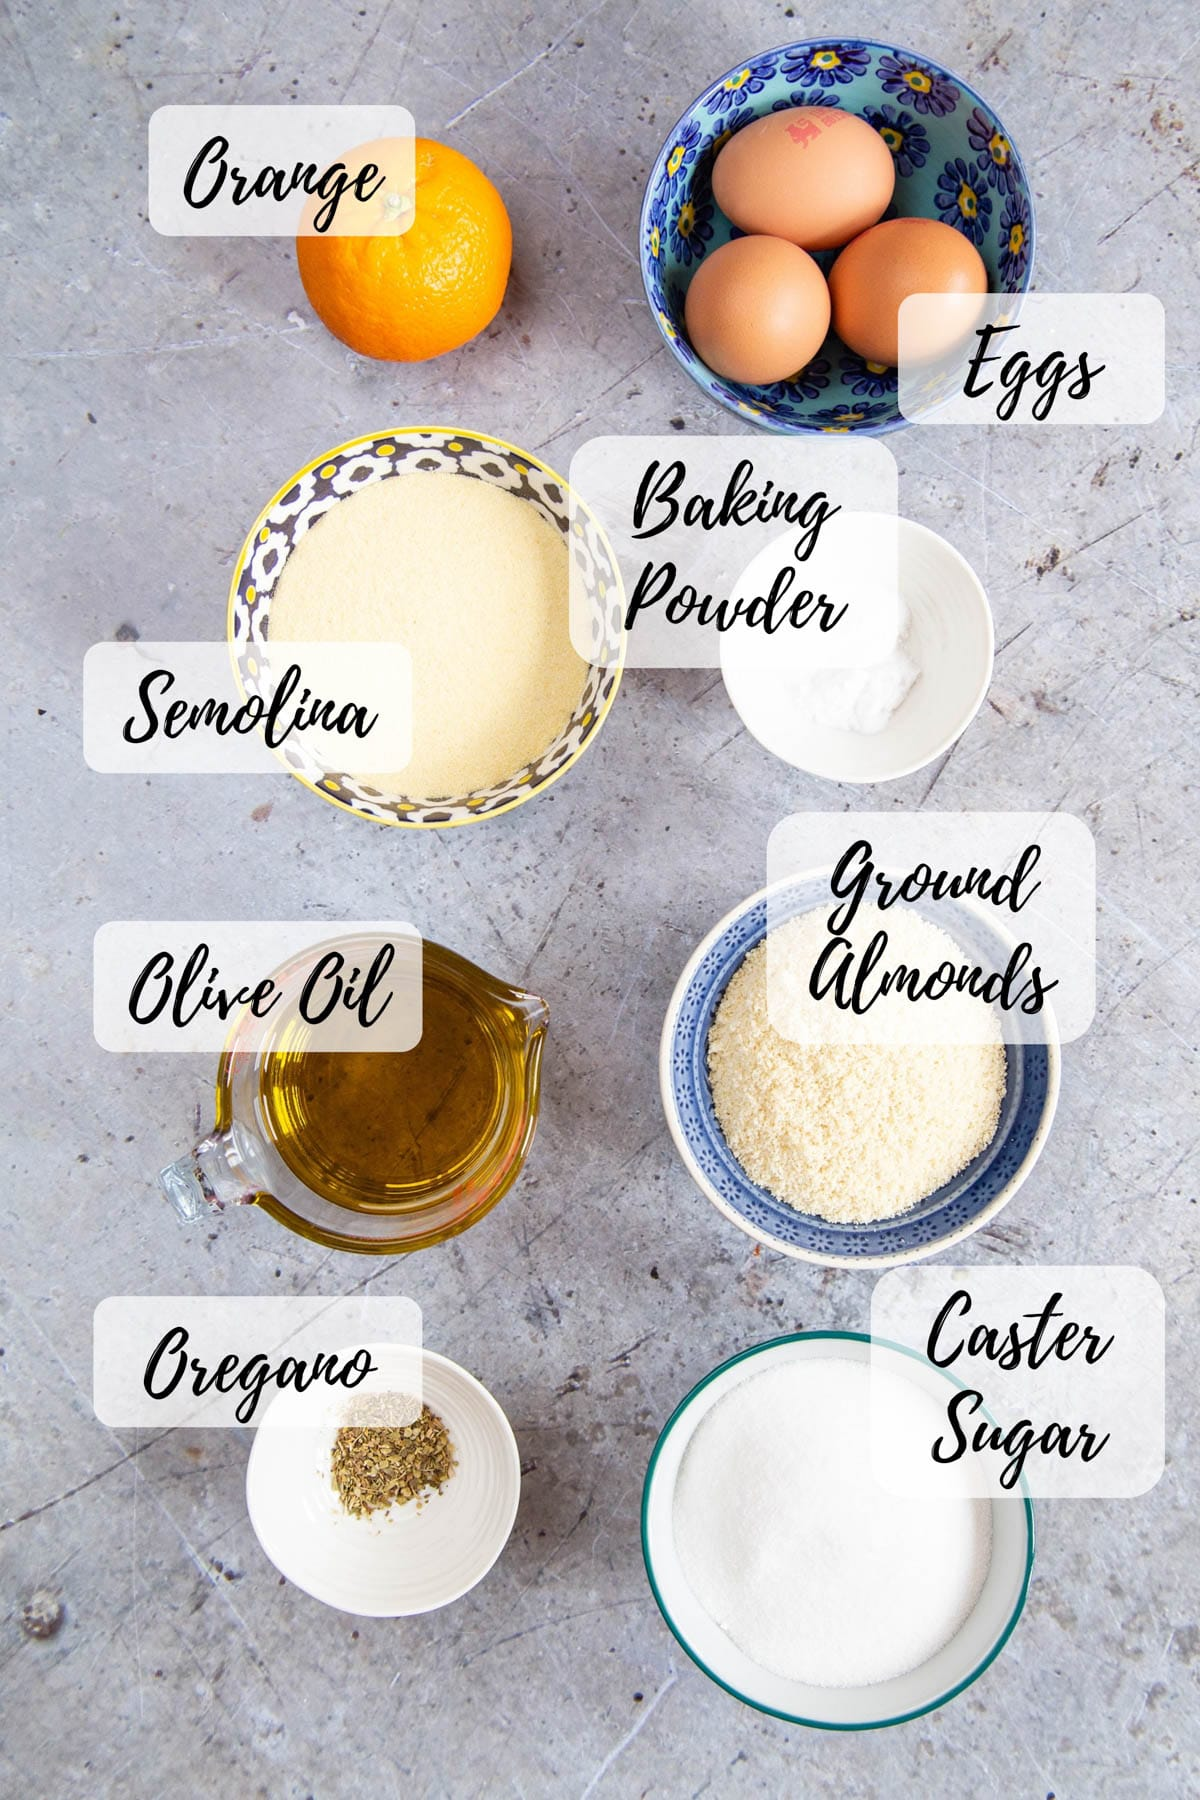 An annotated top down picture of the ingredients for orange olive oil cake: olive oil, eggs, an orange, oregano, sugar, ground almonds, baking powder, and semolina.